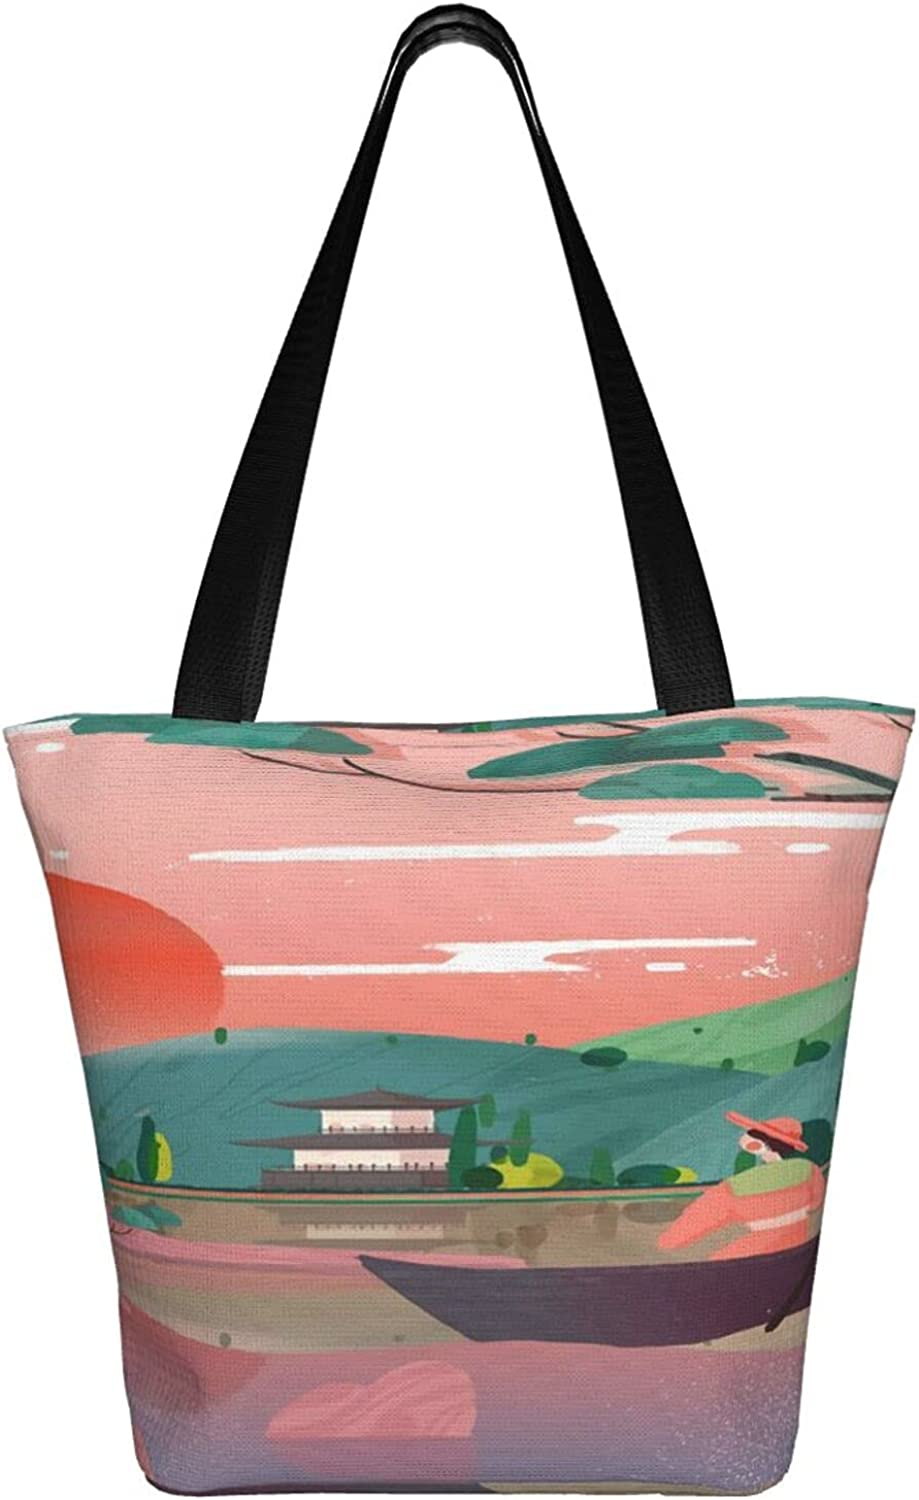 sold out Japanese Style New product type Ukiyo-E Pink Handbag Tote Bags Bag Women Shoulder